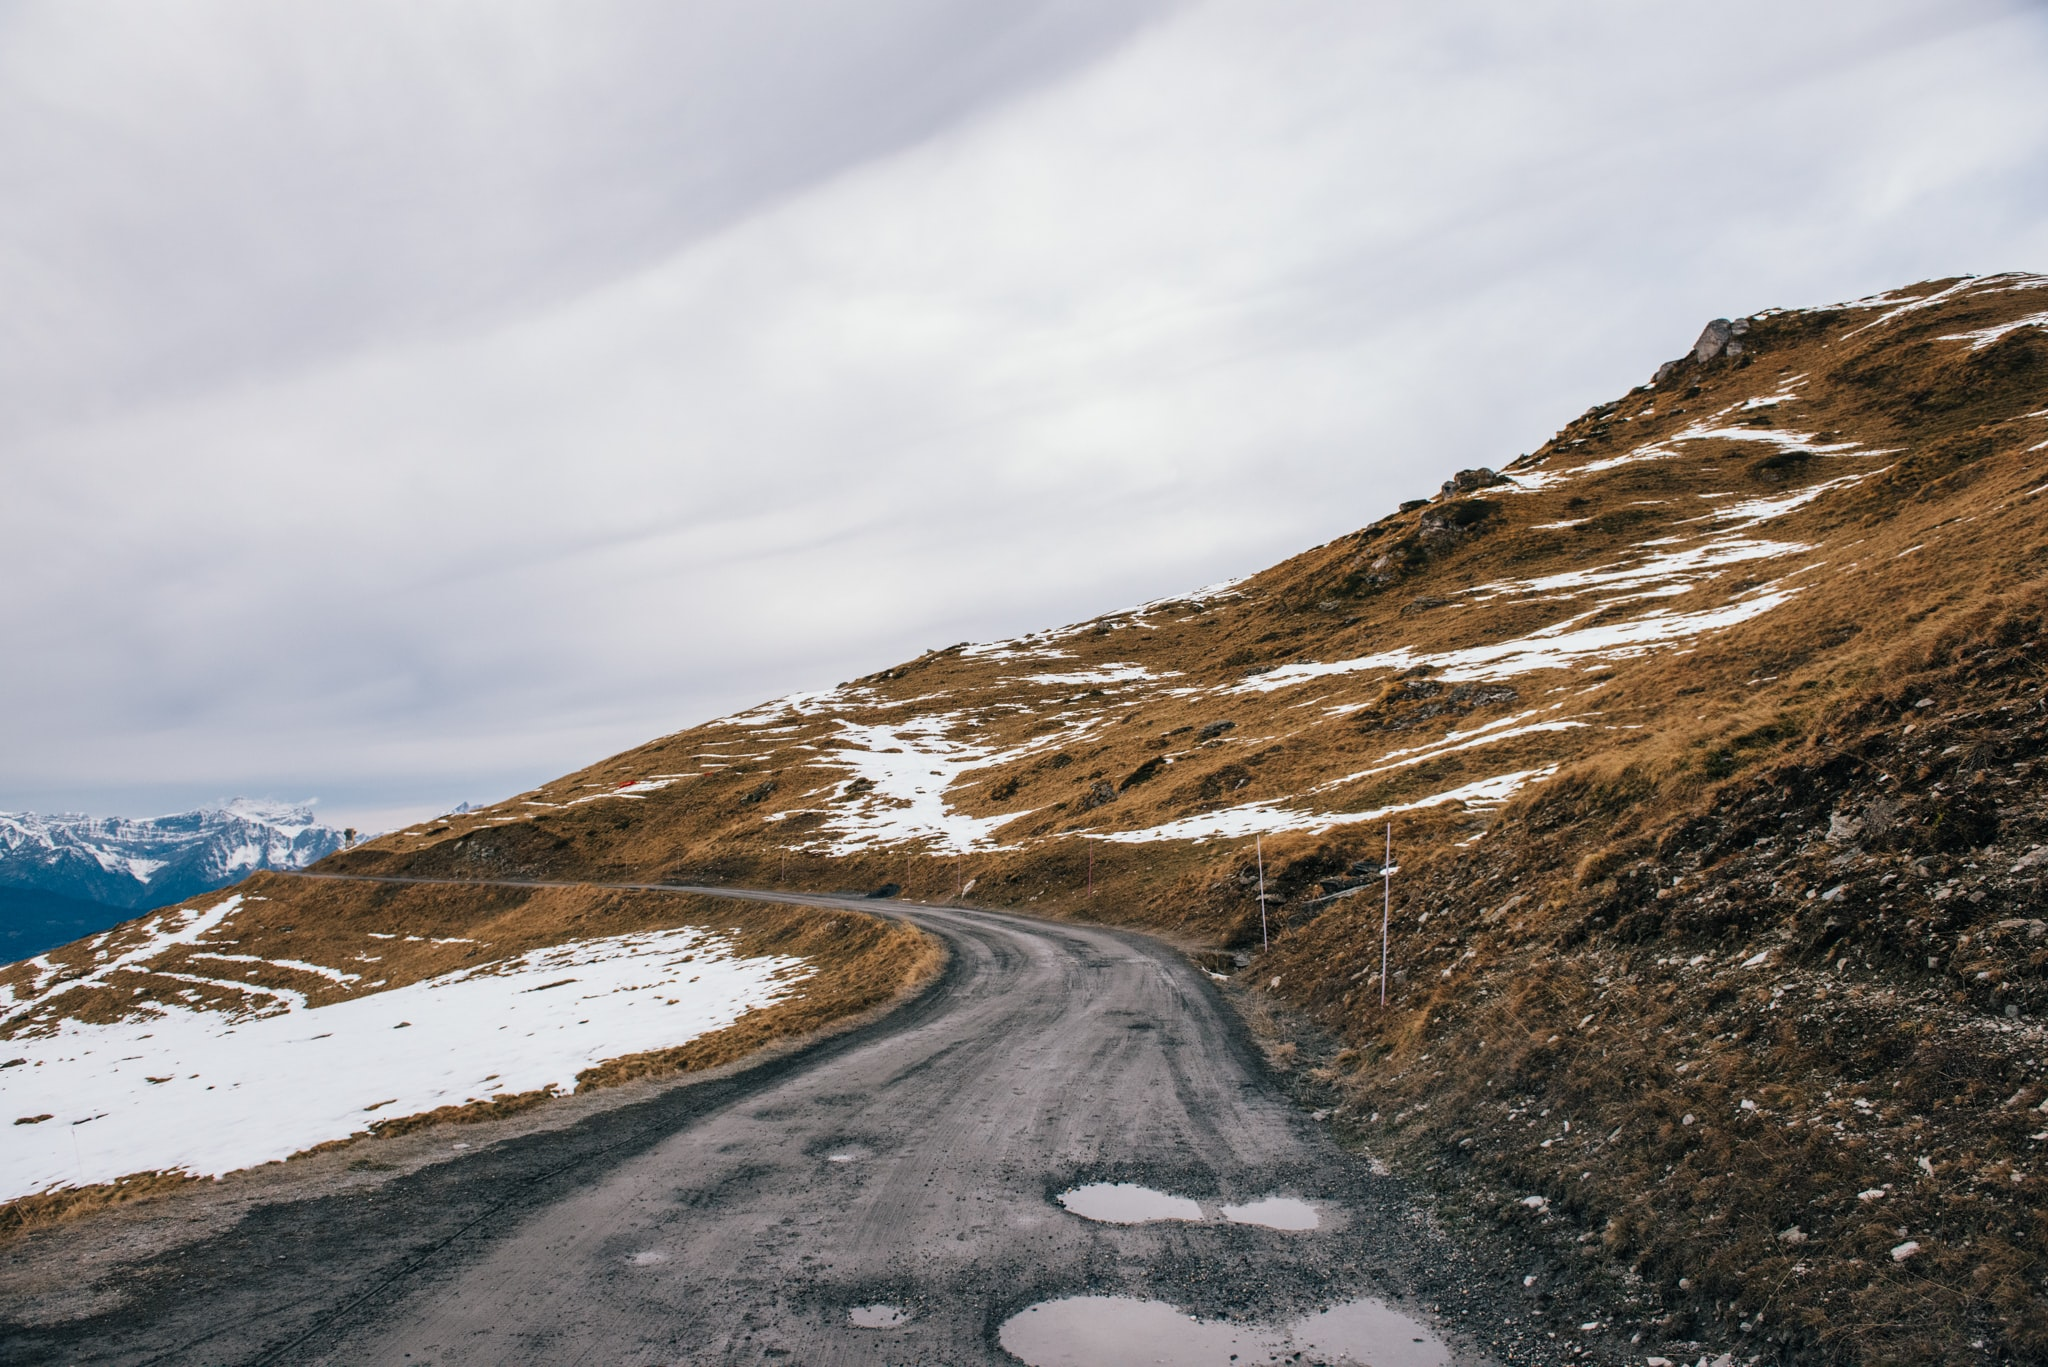 road beside mountain with snow during daytime